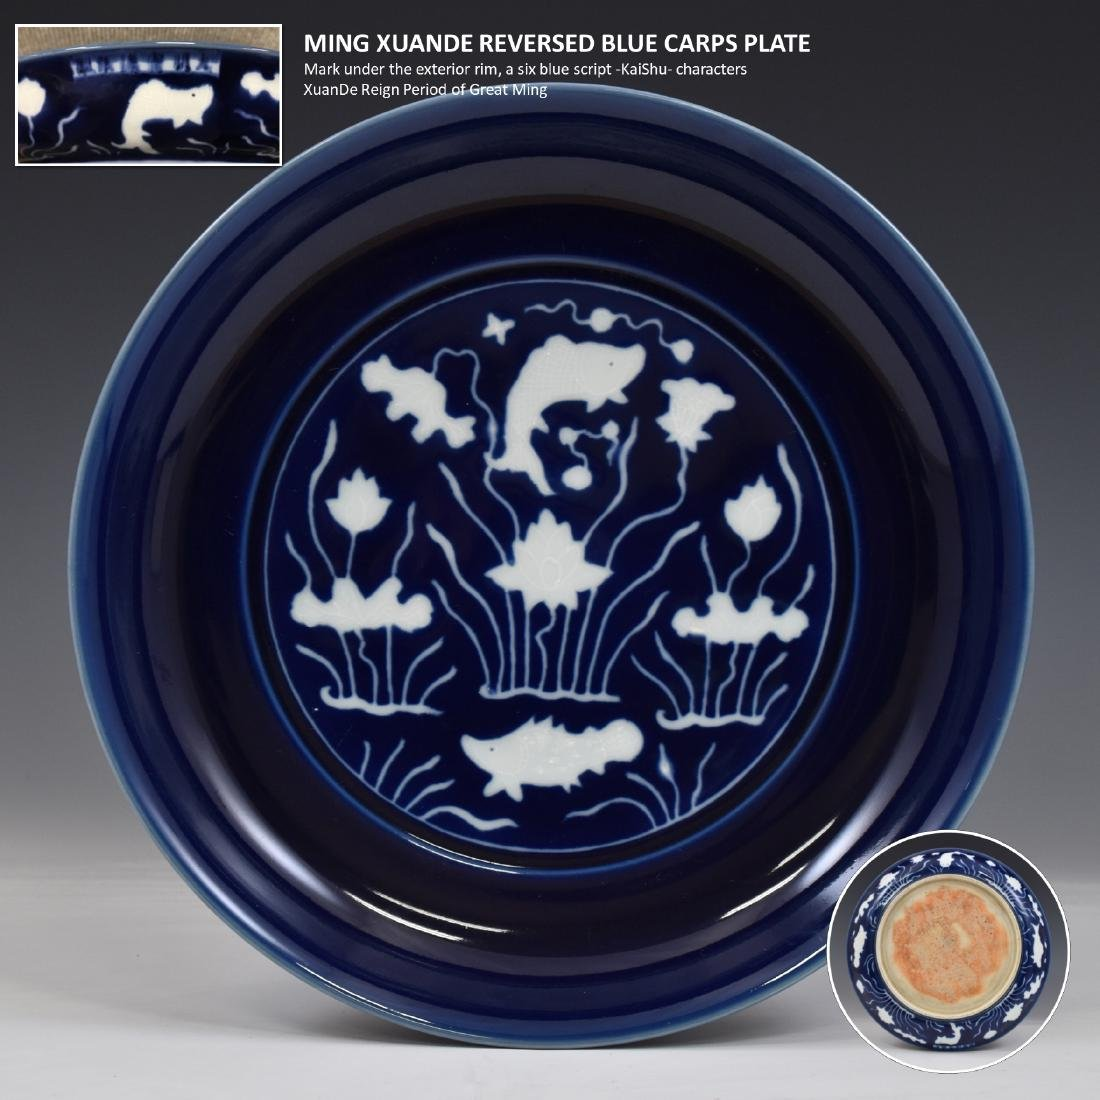 MING XUANDE REVERSED BLUE CARPS PLATE